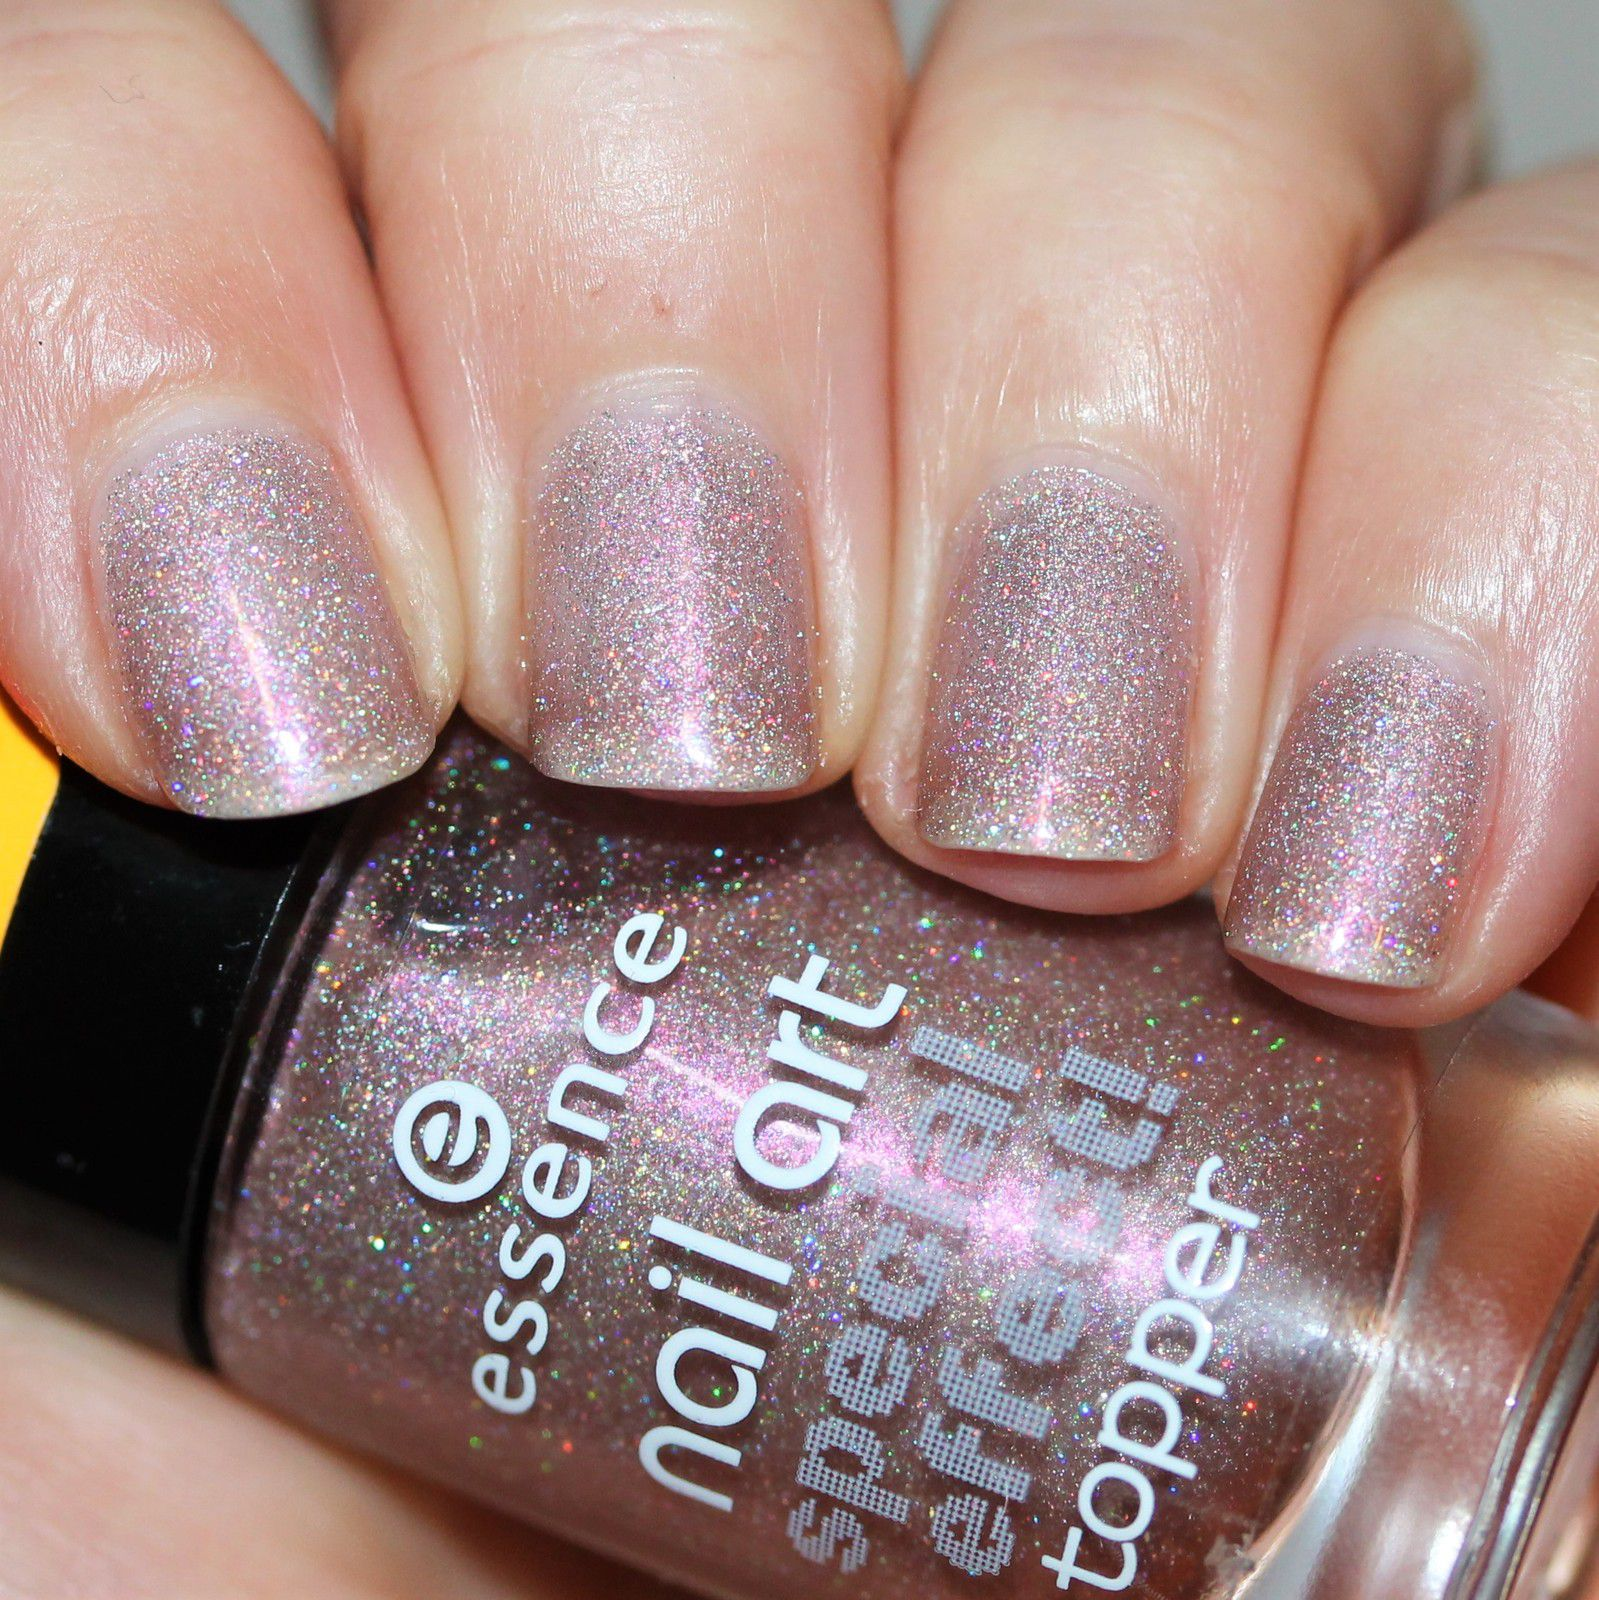 Essie Protein Base Coat / Essence Holo Topping, Please! / HK Girl Top Coat